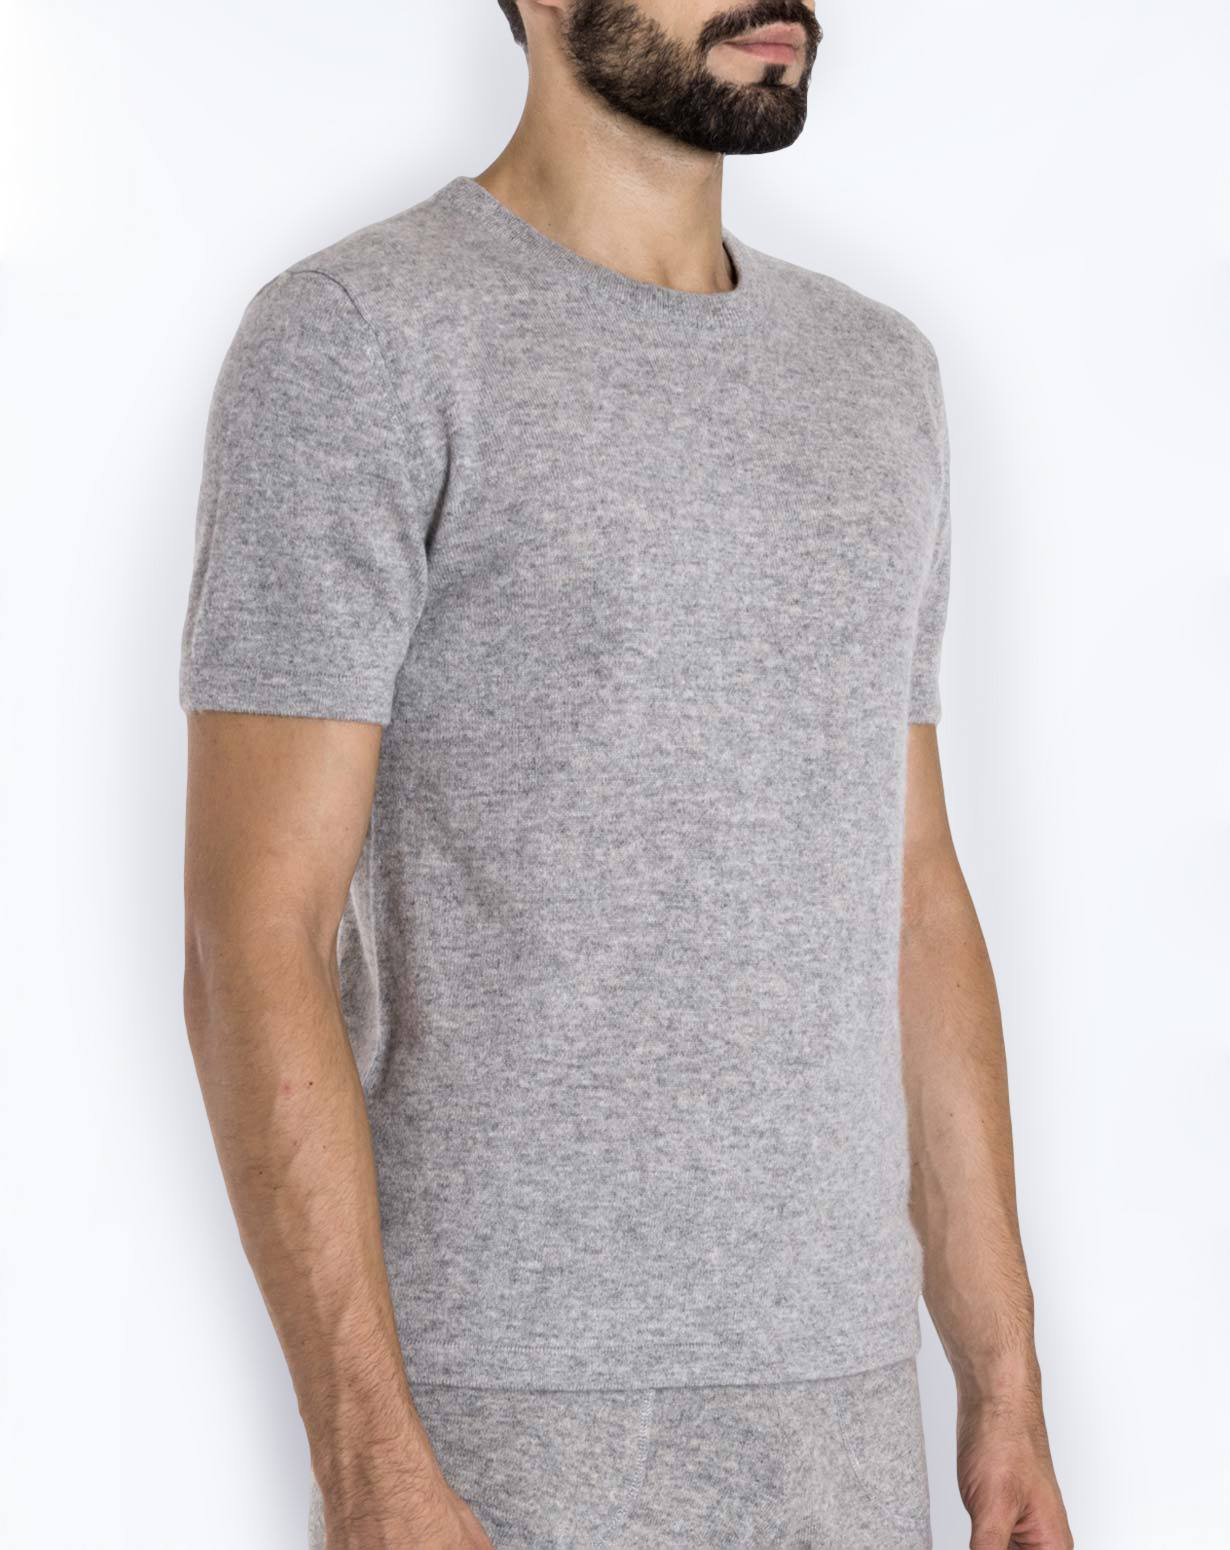 Shop for and buy mens cashmere t shirts online at Macy's. Find mens cashmere t shirts at Macy's.